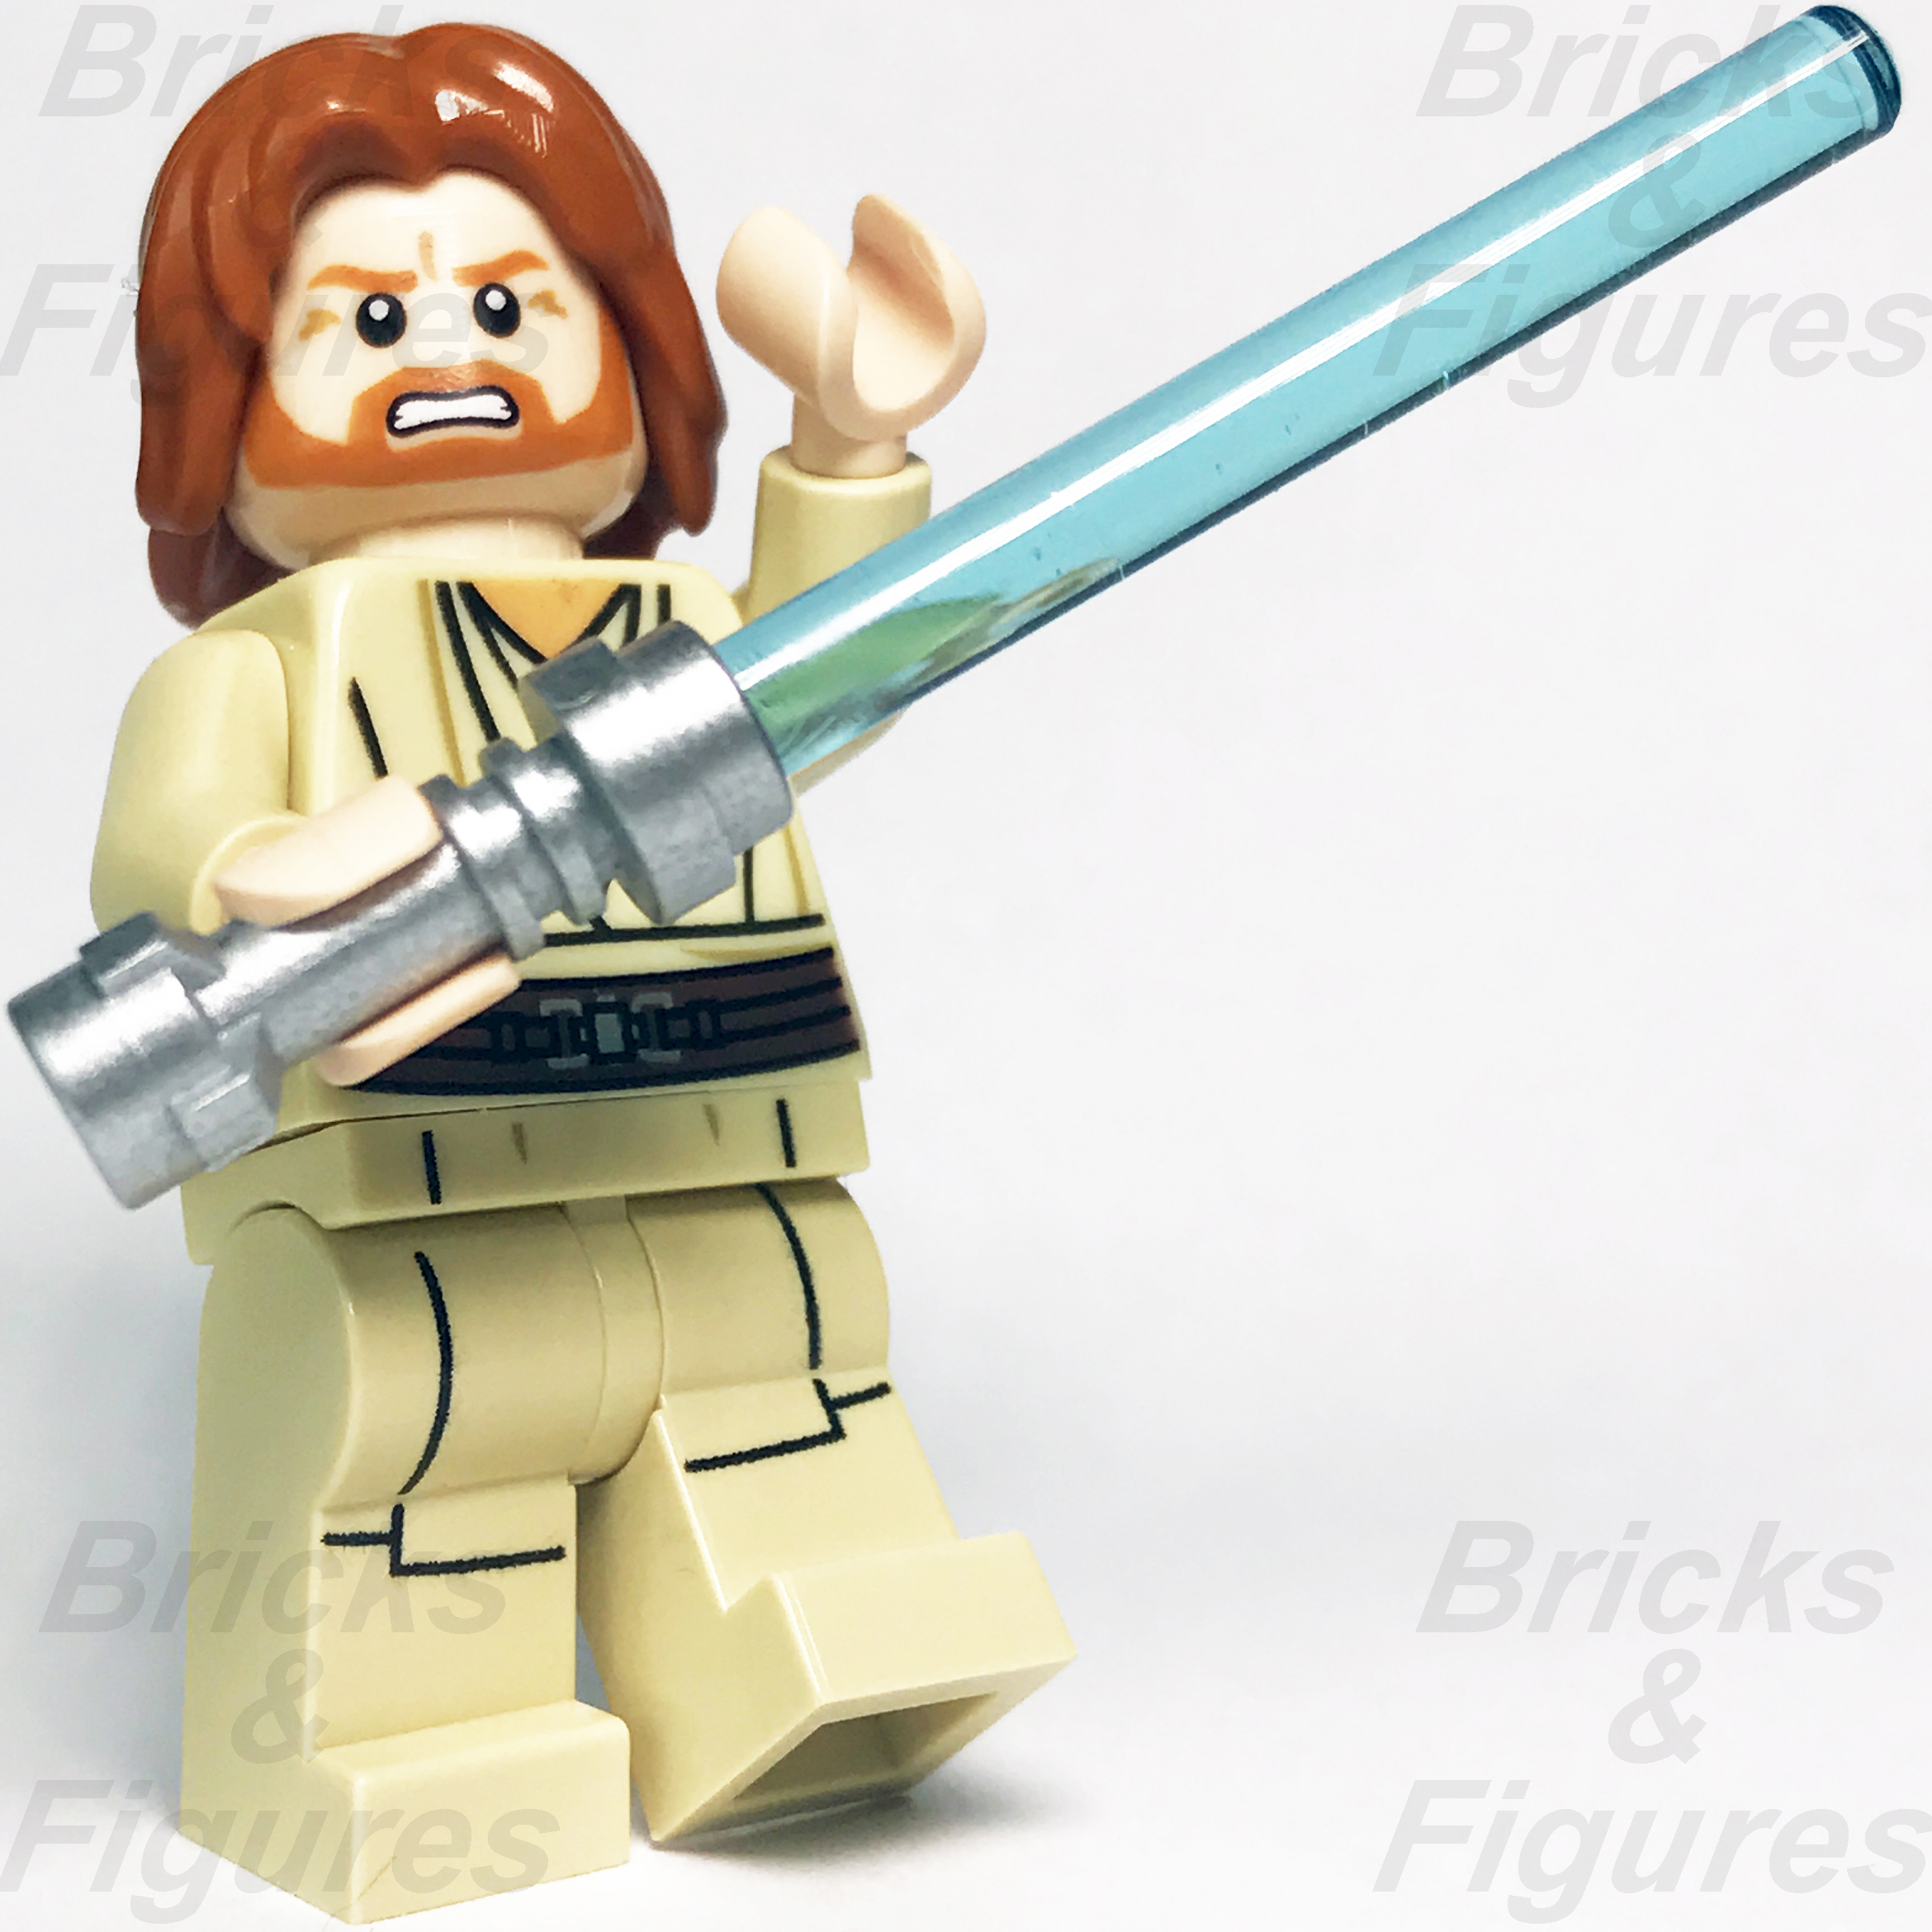 Toys Amp Games Construction Amp Building Toys Star Wars Lego